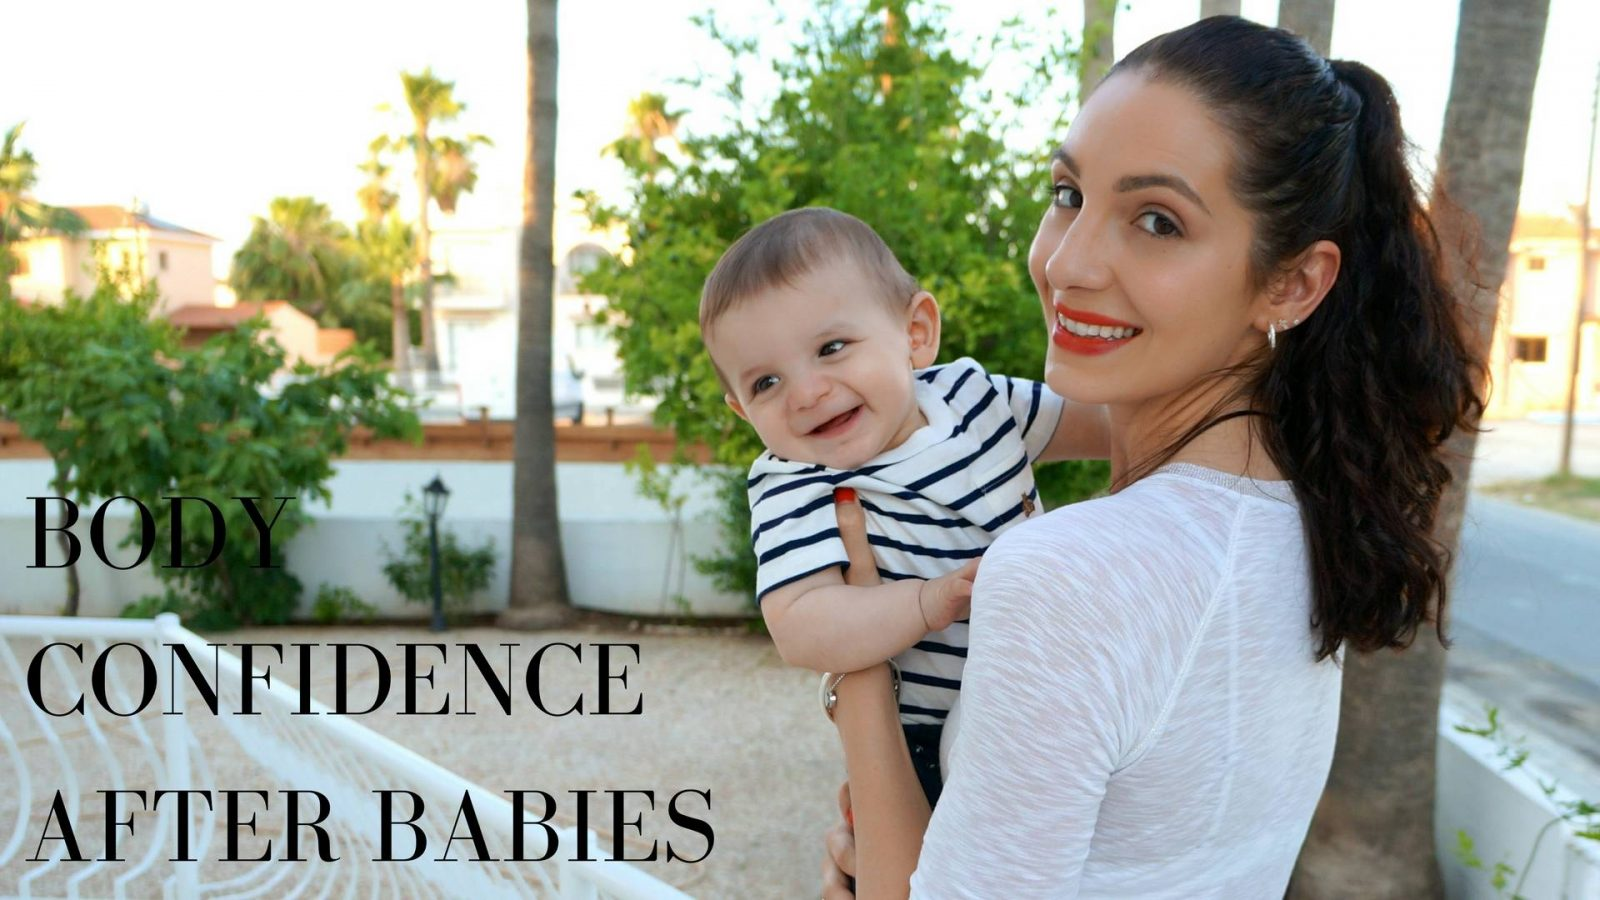 body confidence after babies